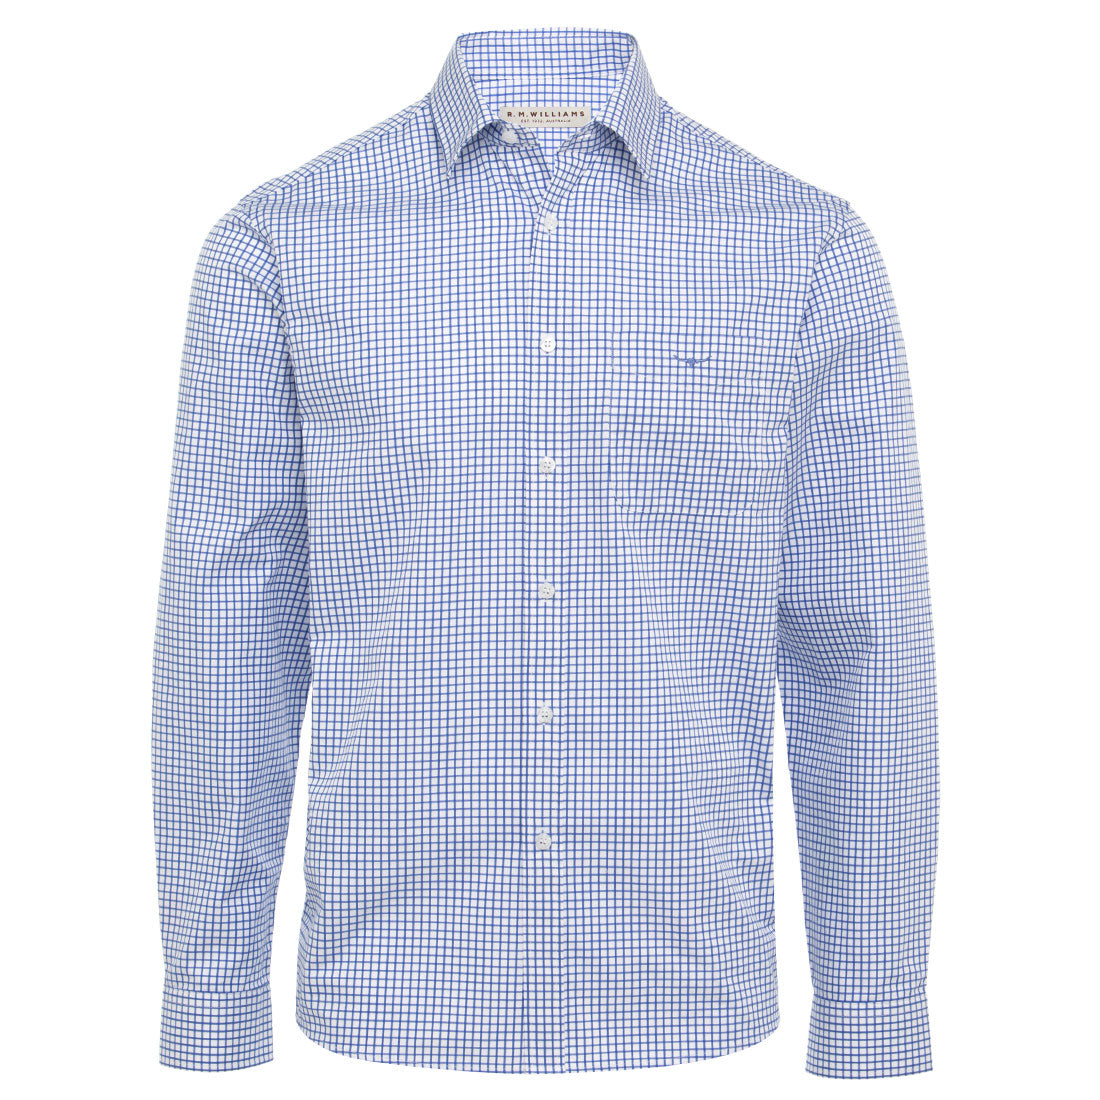 R.M.Williams Collins Shirt White/Blue